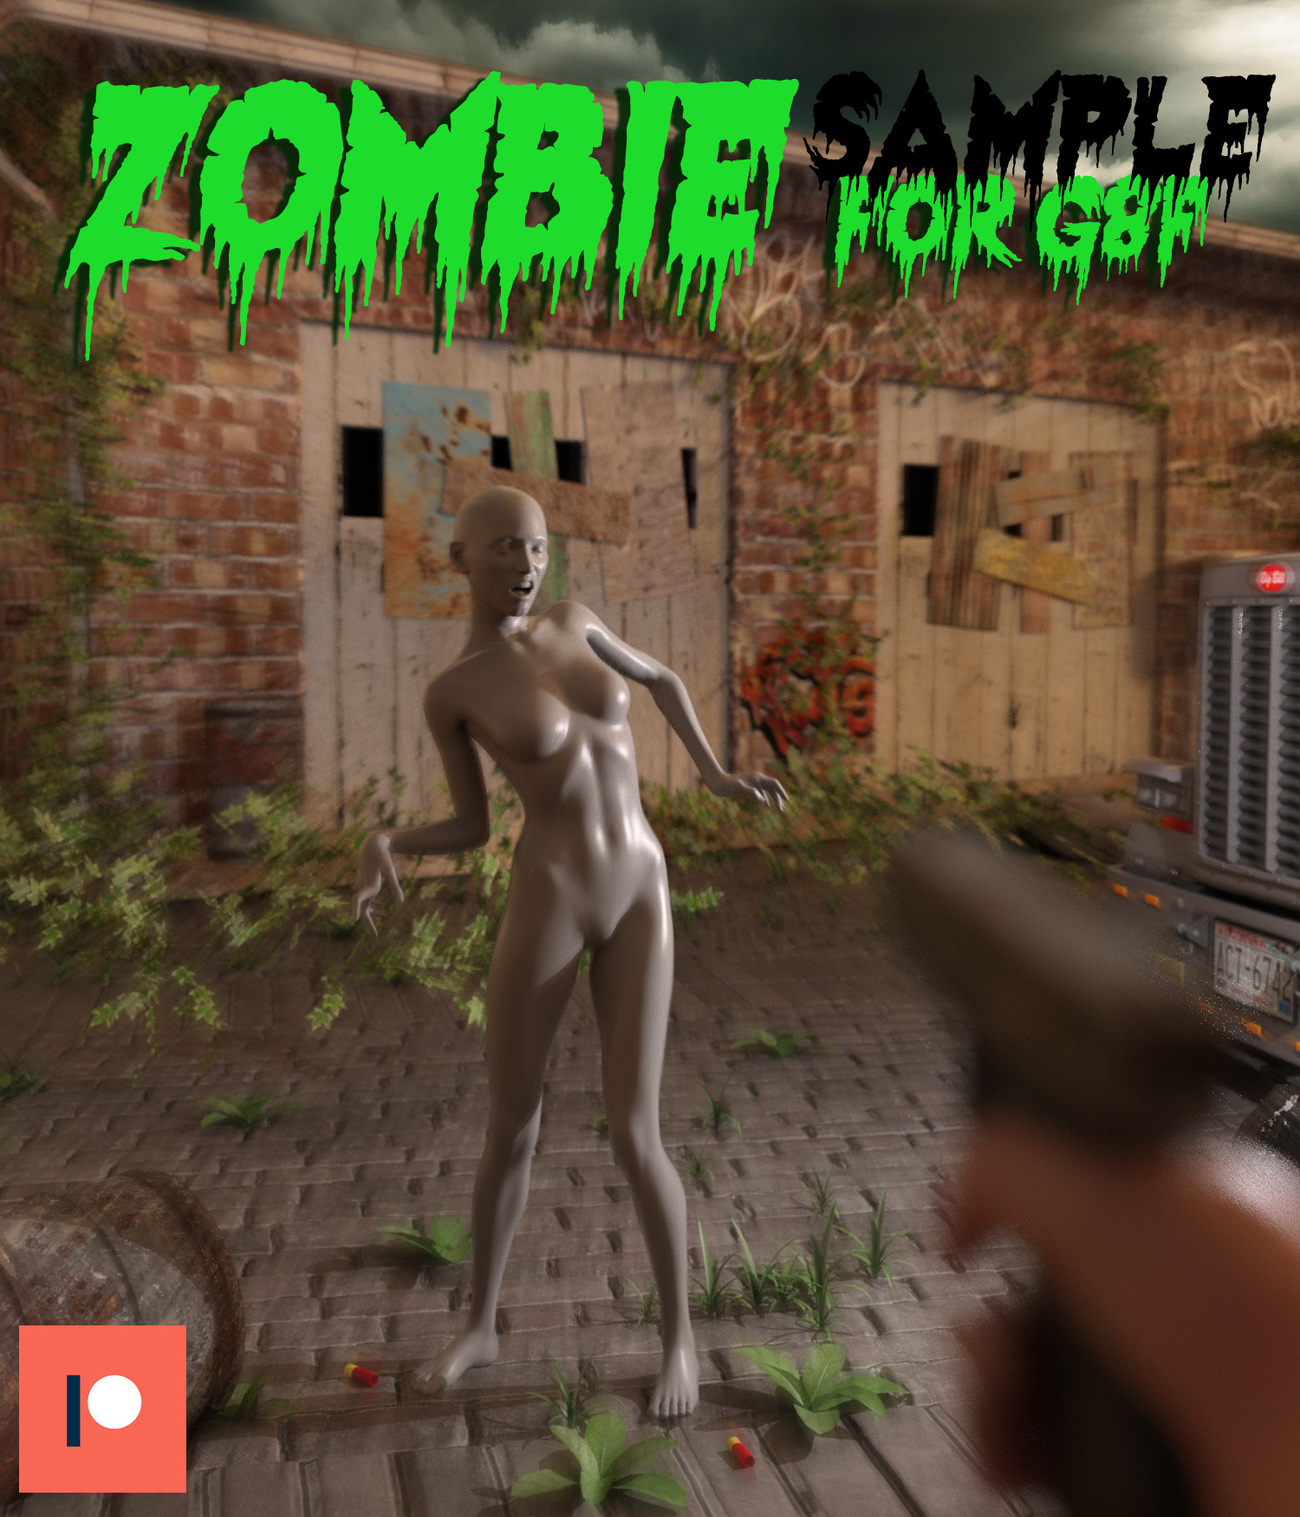 Zombie pose for G8F by lstowe